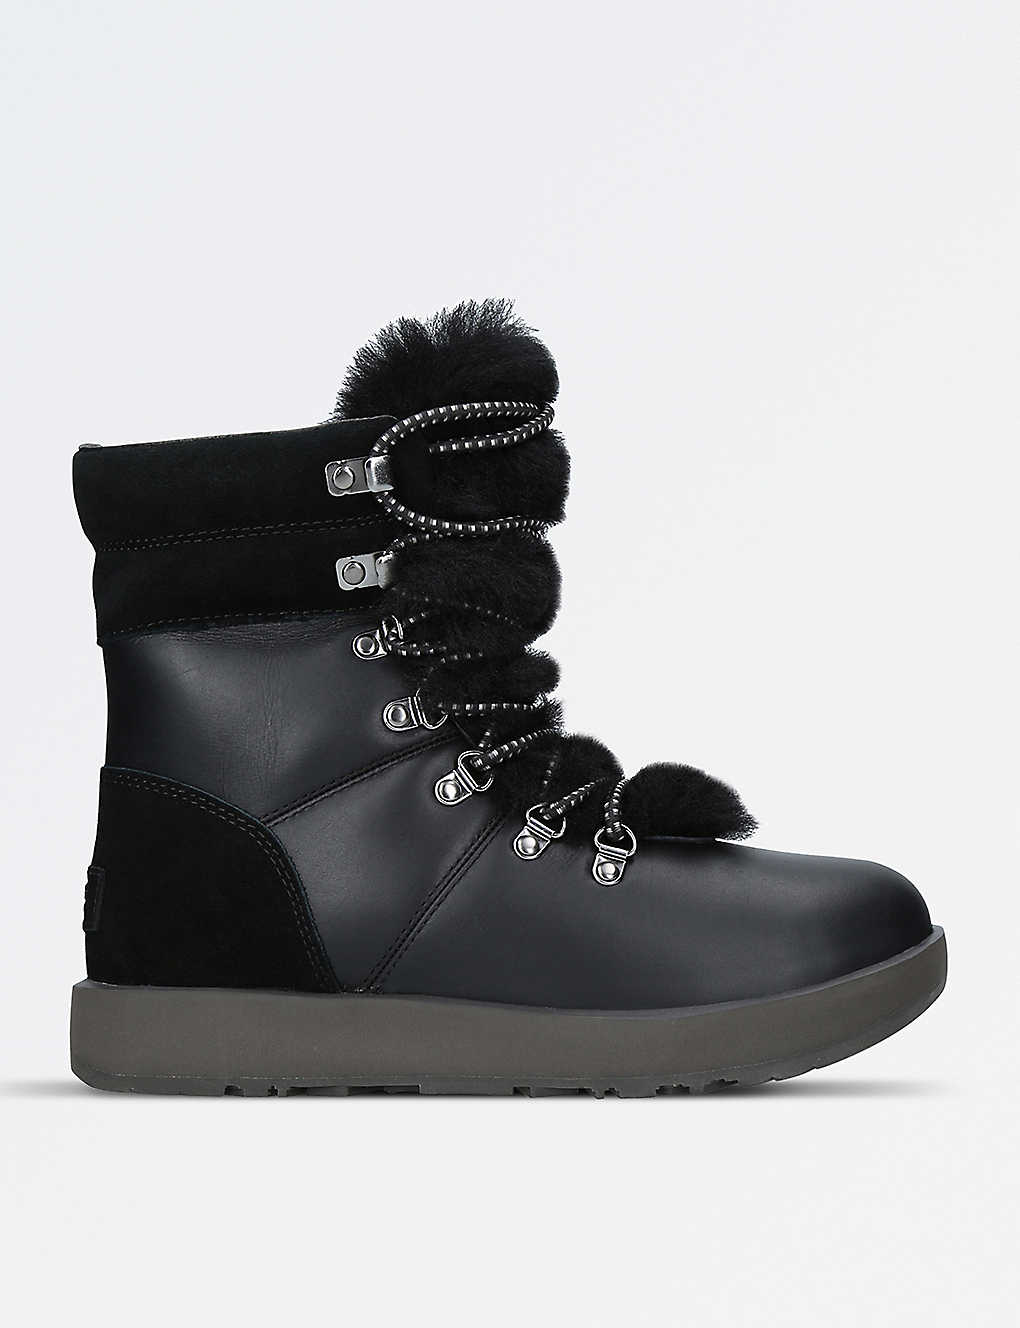 e07df720a26 UGG - Viki waterproof leather, suede and sheepskin boots ...